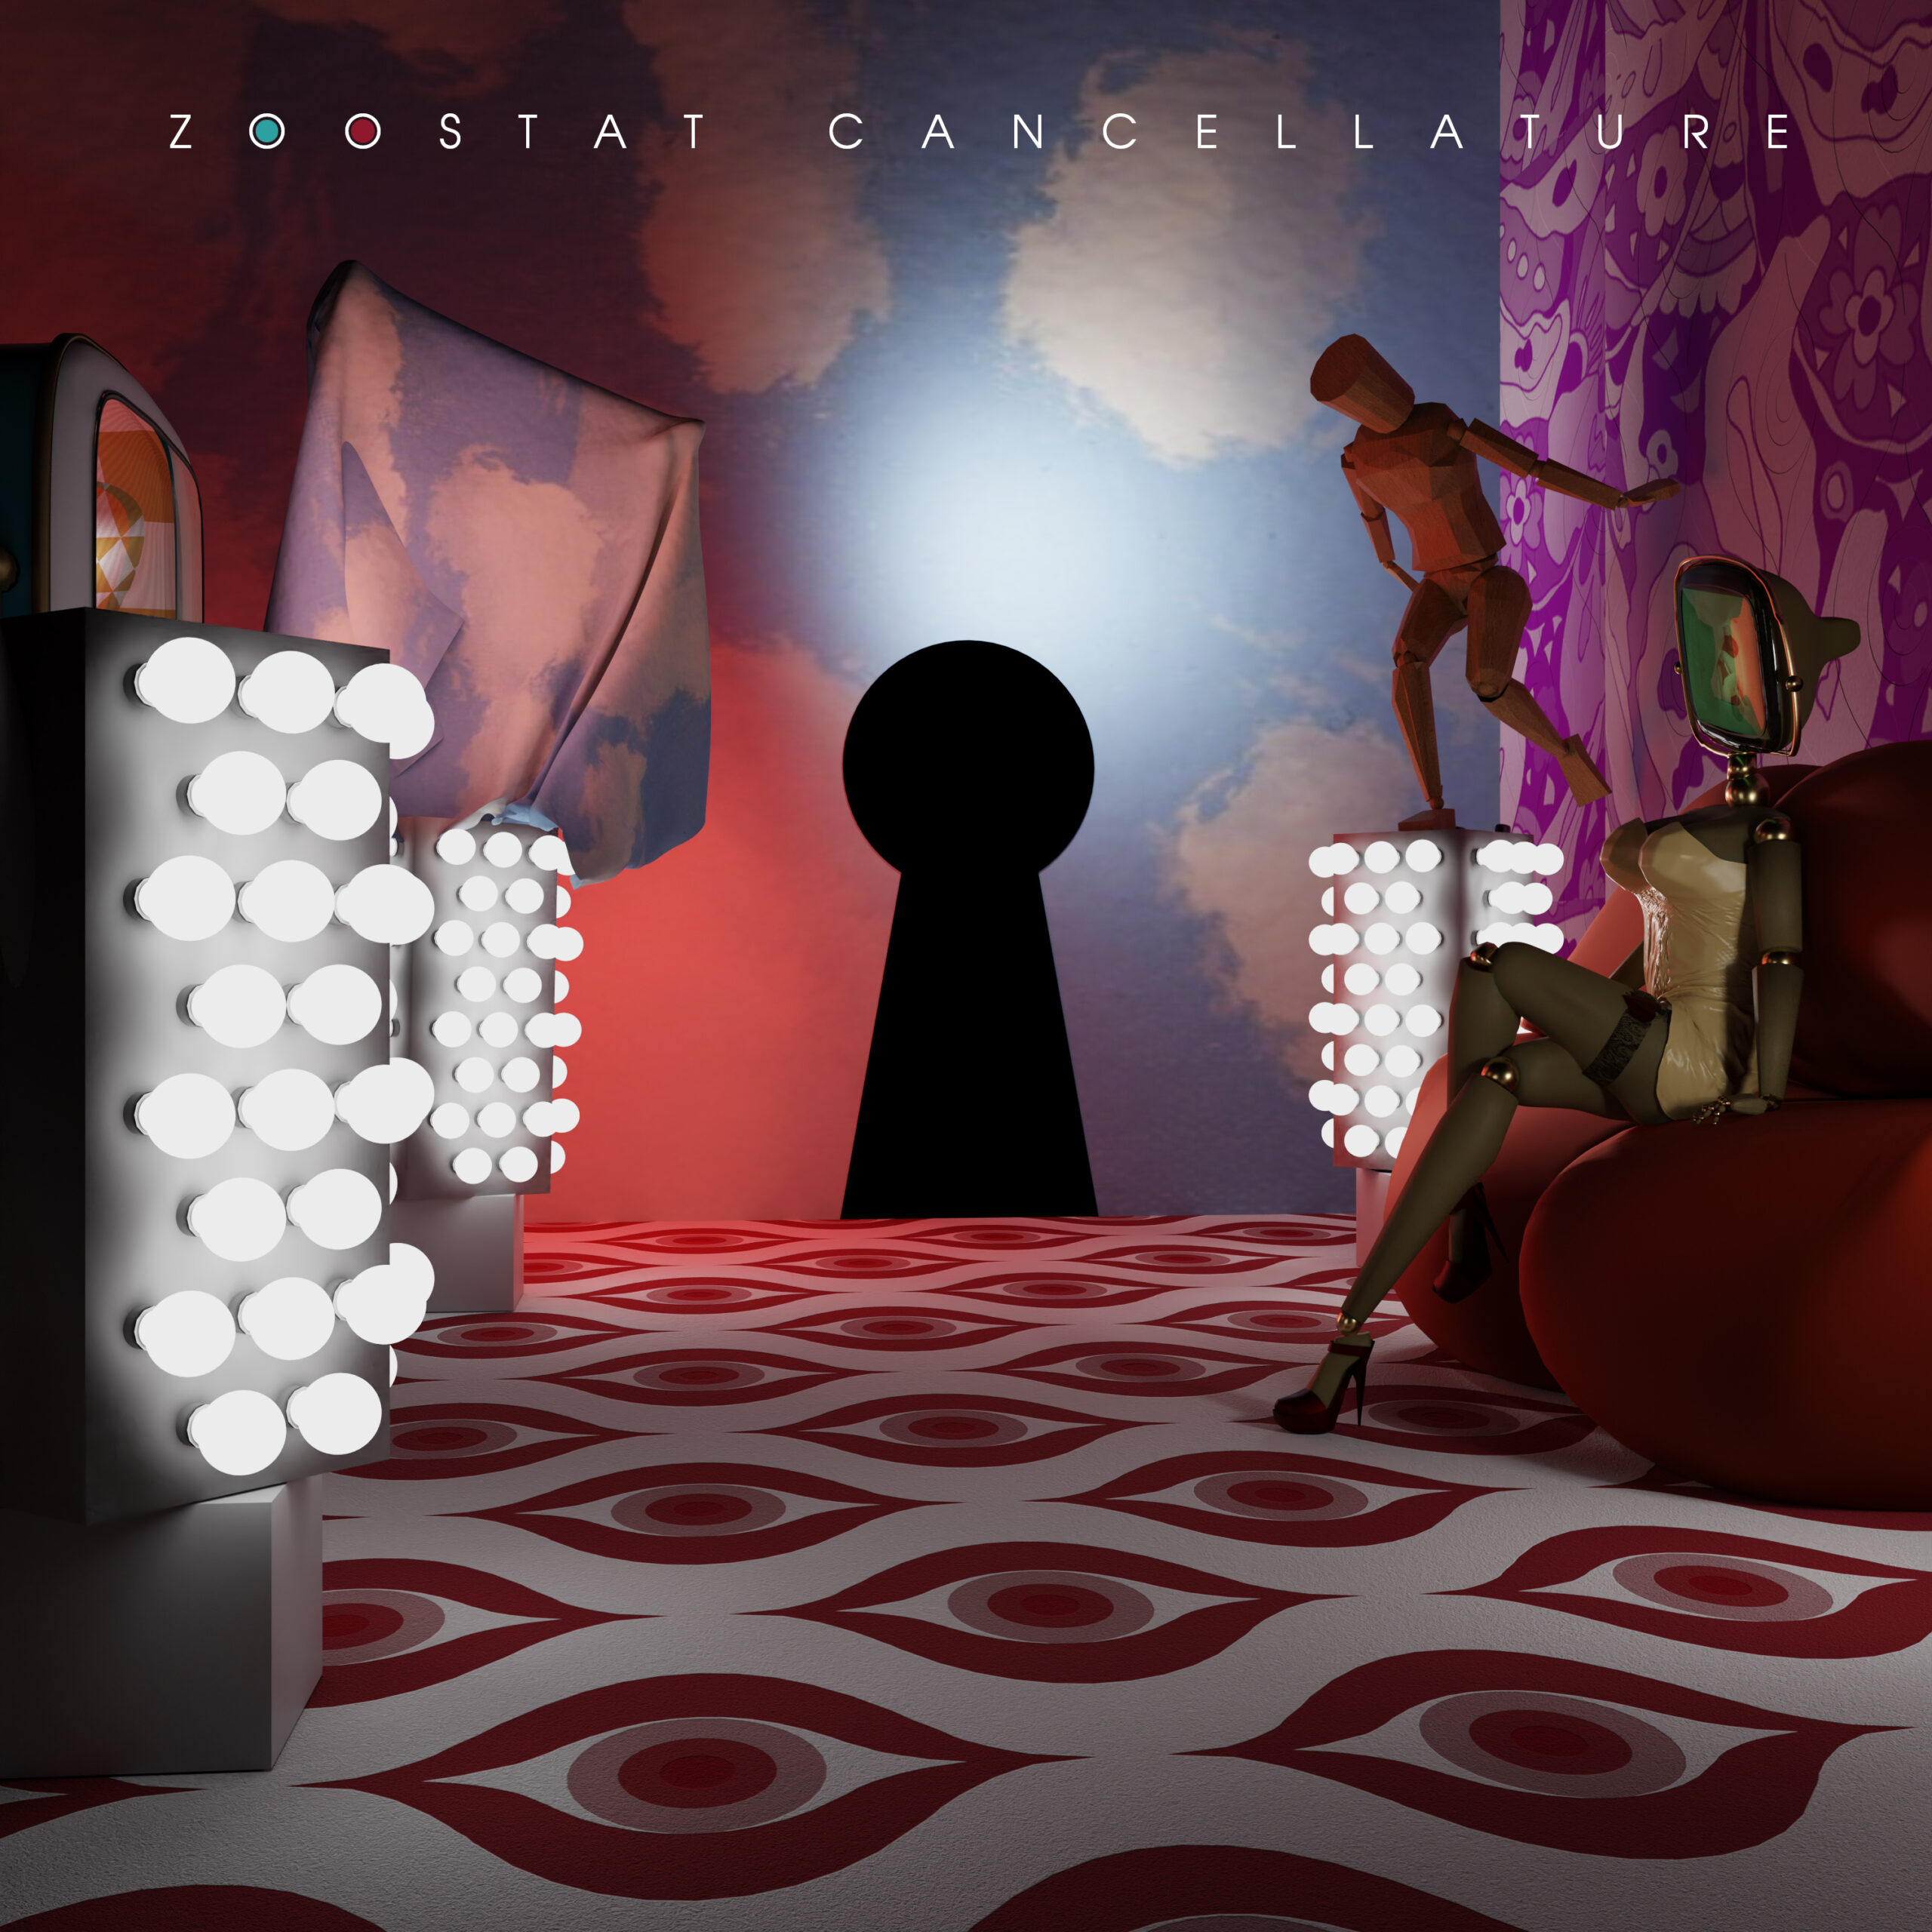 Cancellature EP by Zoostat - artwork